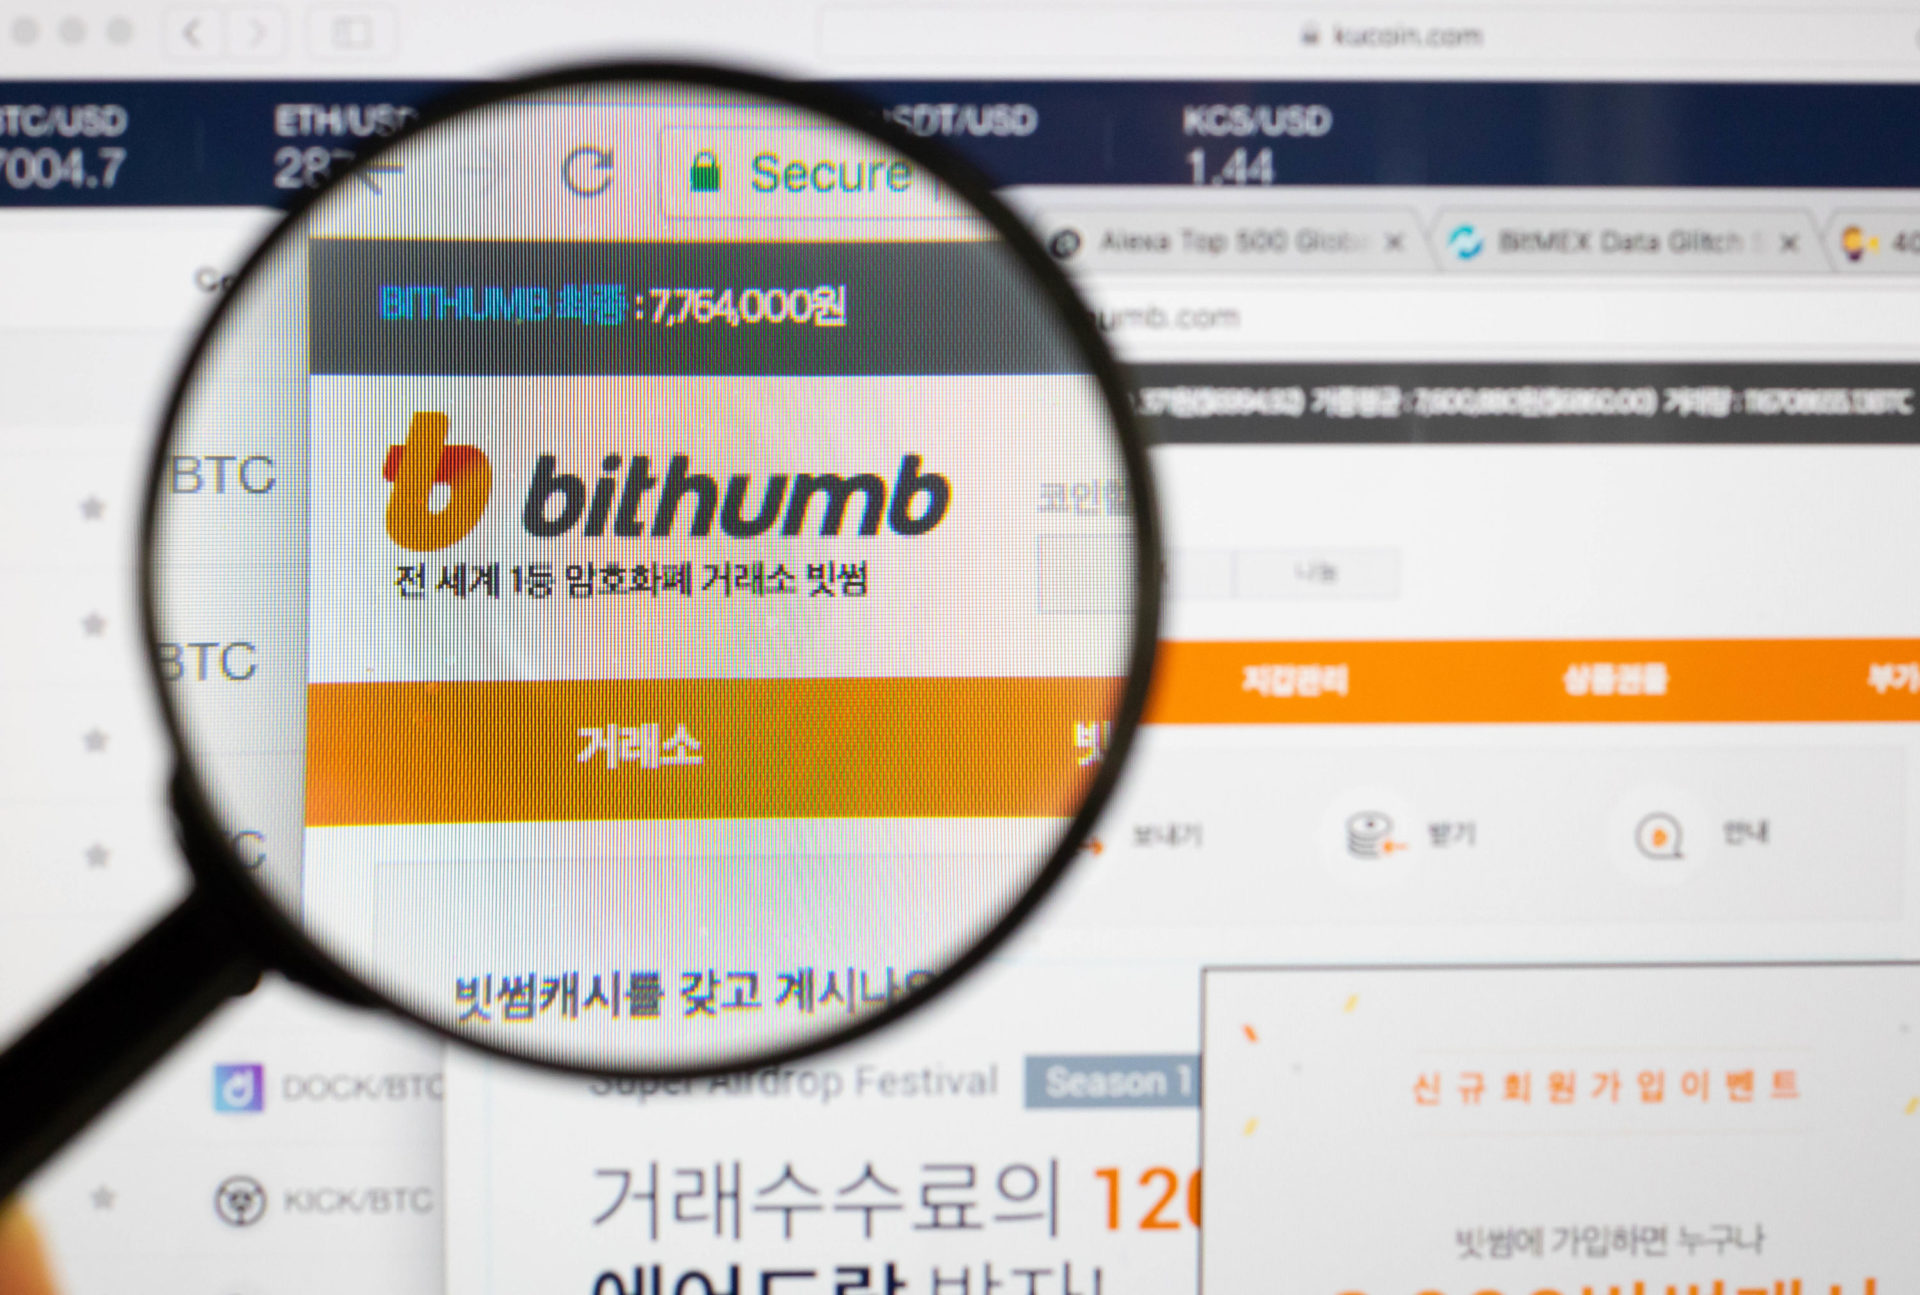 Why Didn't Crypto Markets React To Bithumb's Loss Of XRP, EOS? 13